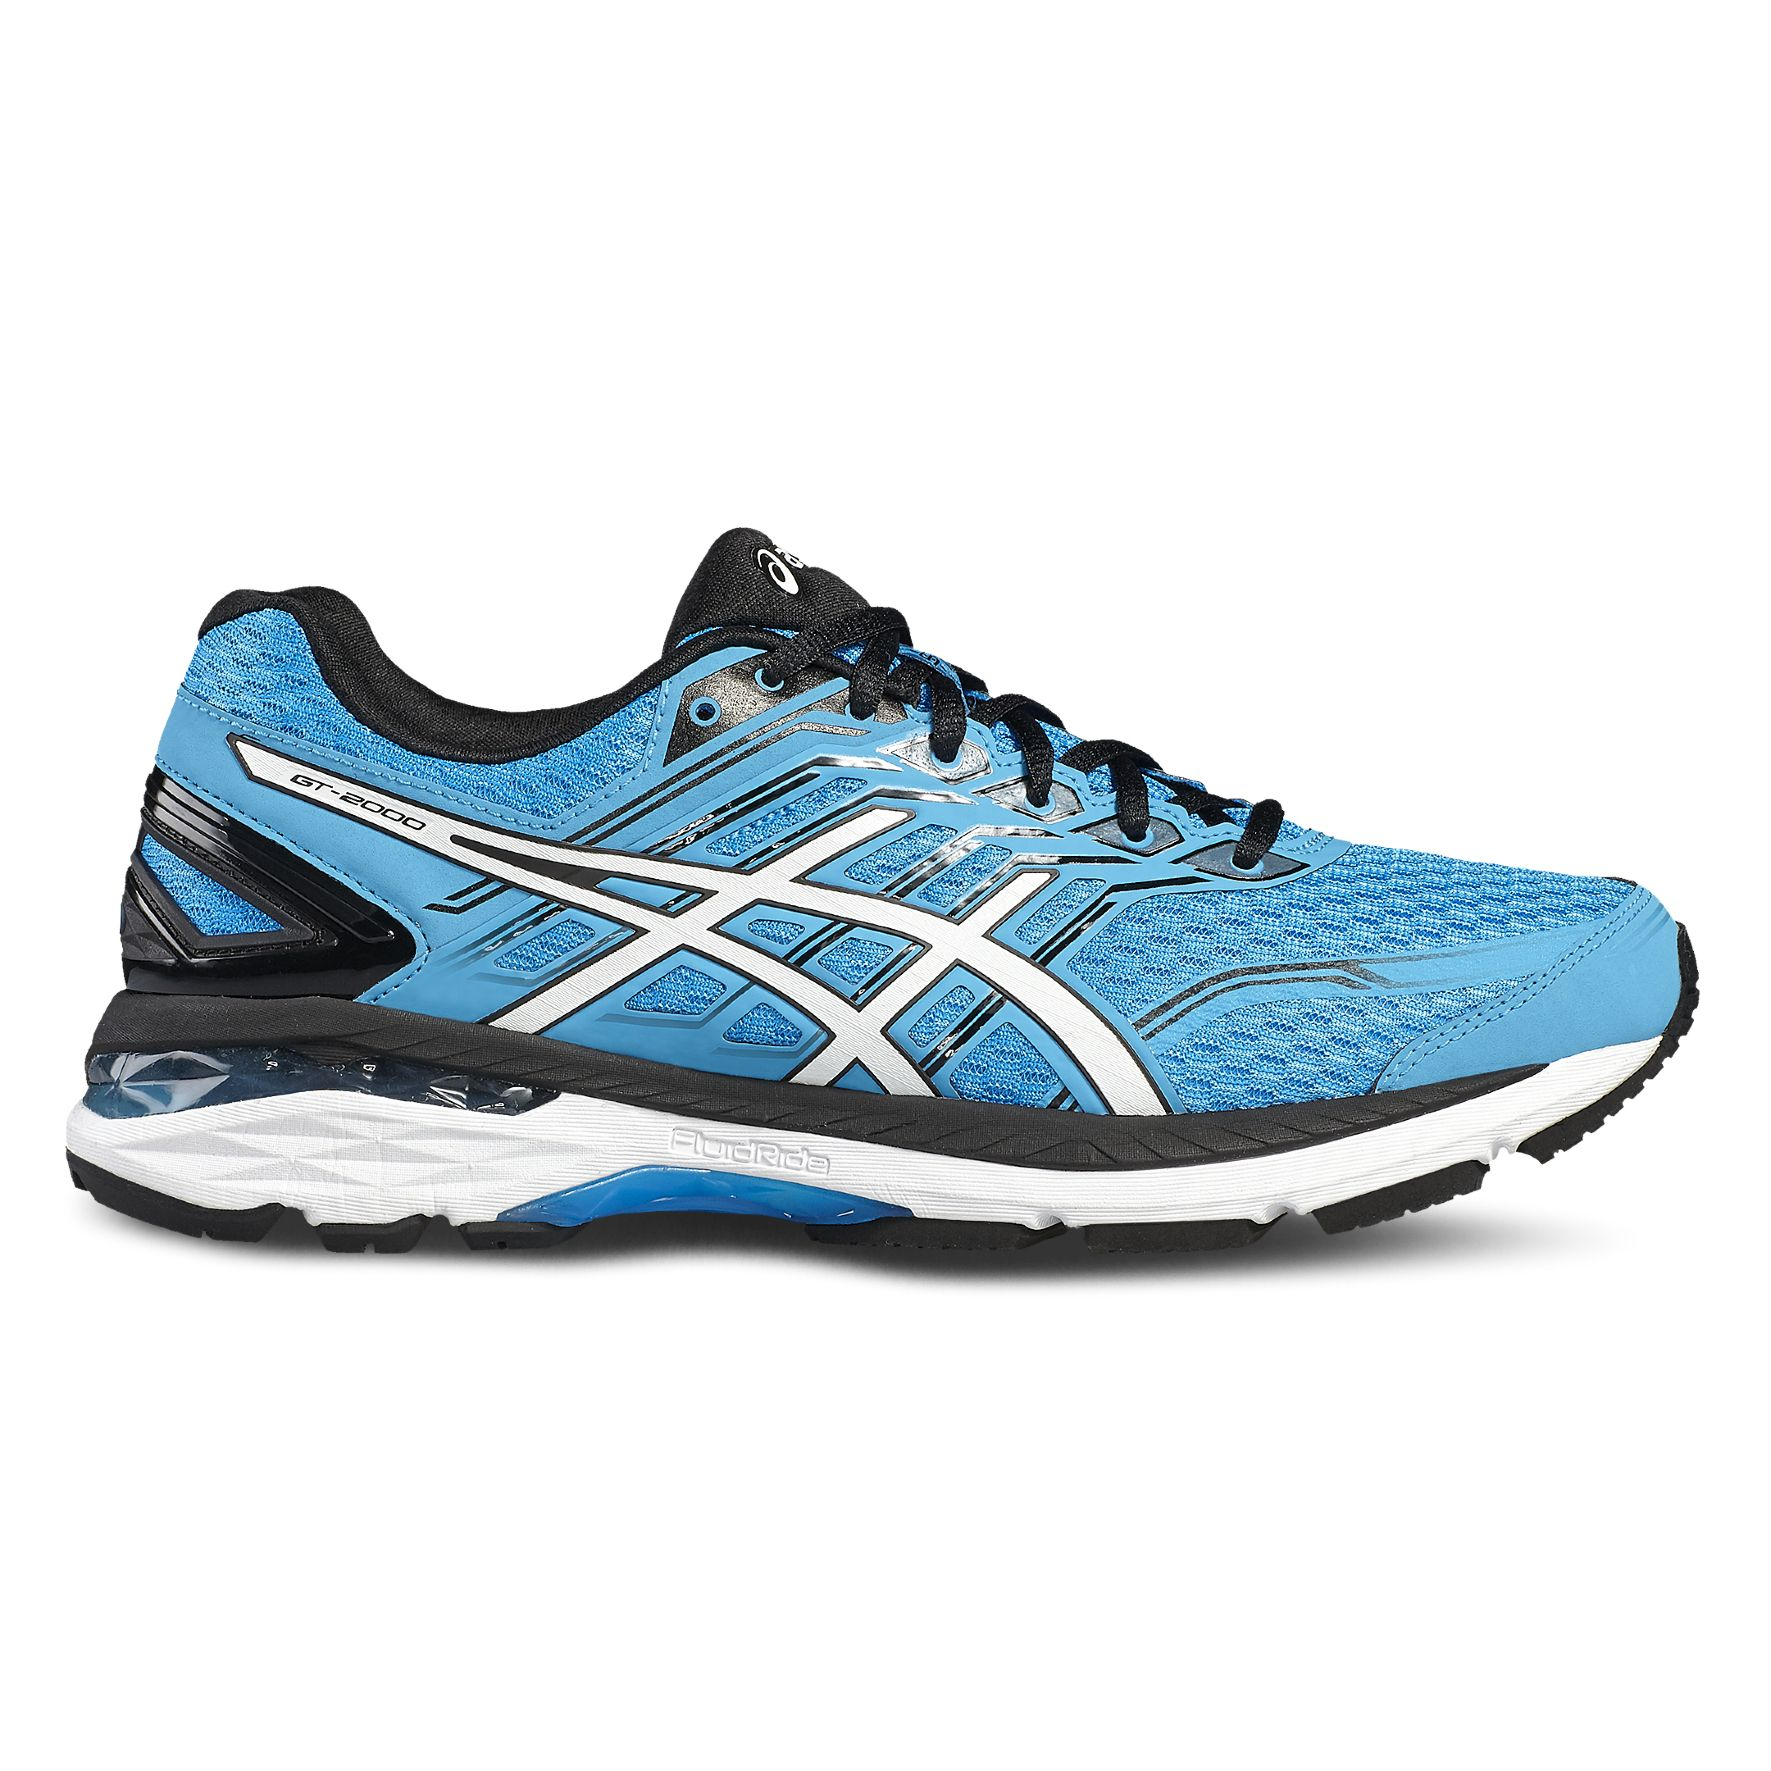 Best Mens Running Shoes For Durability